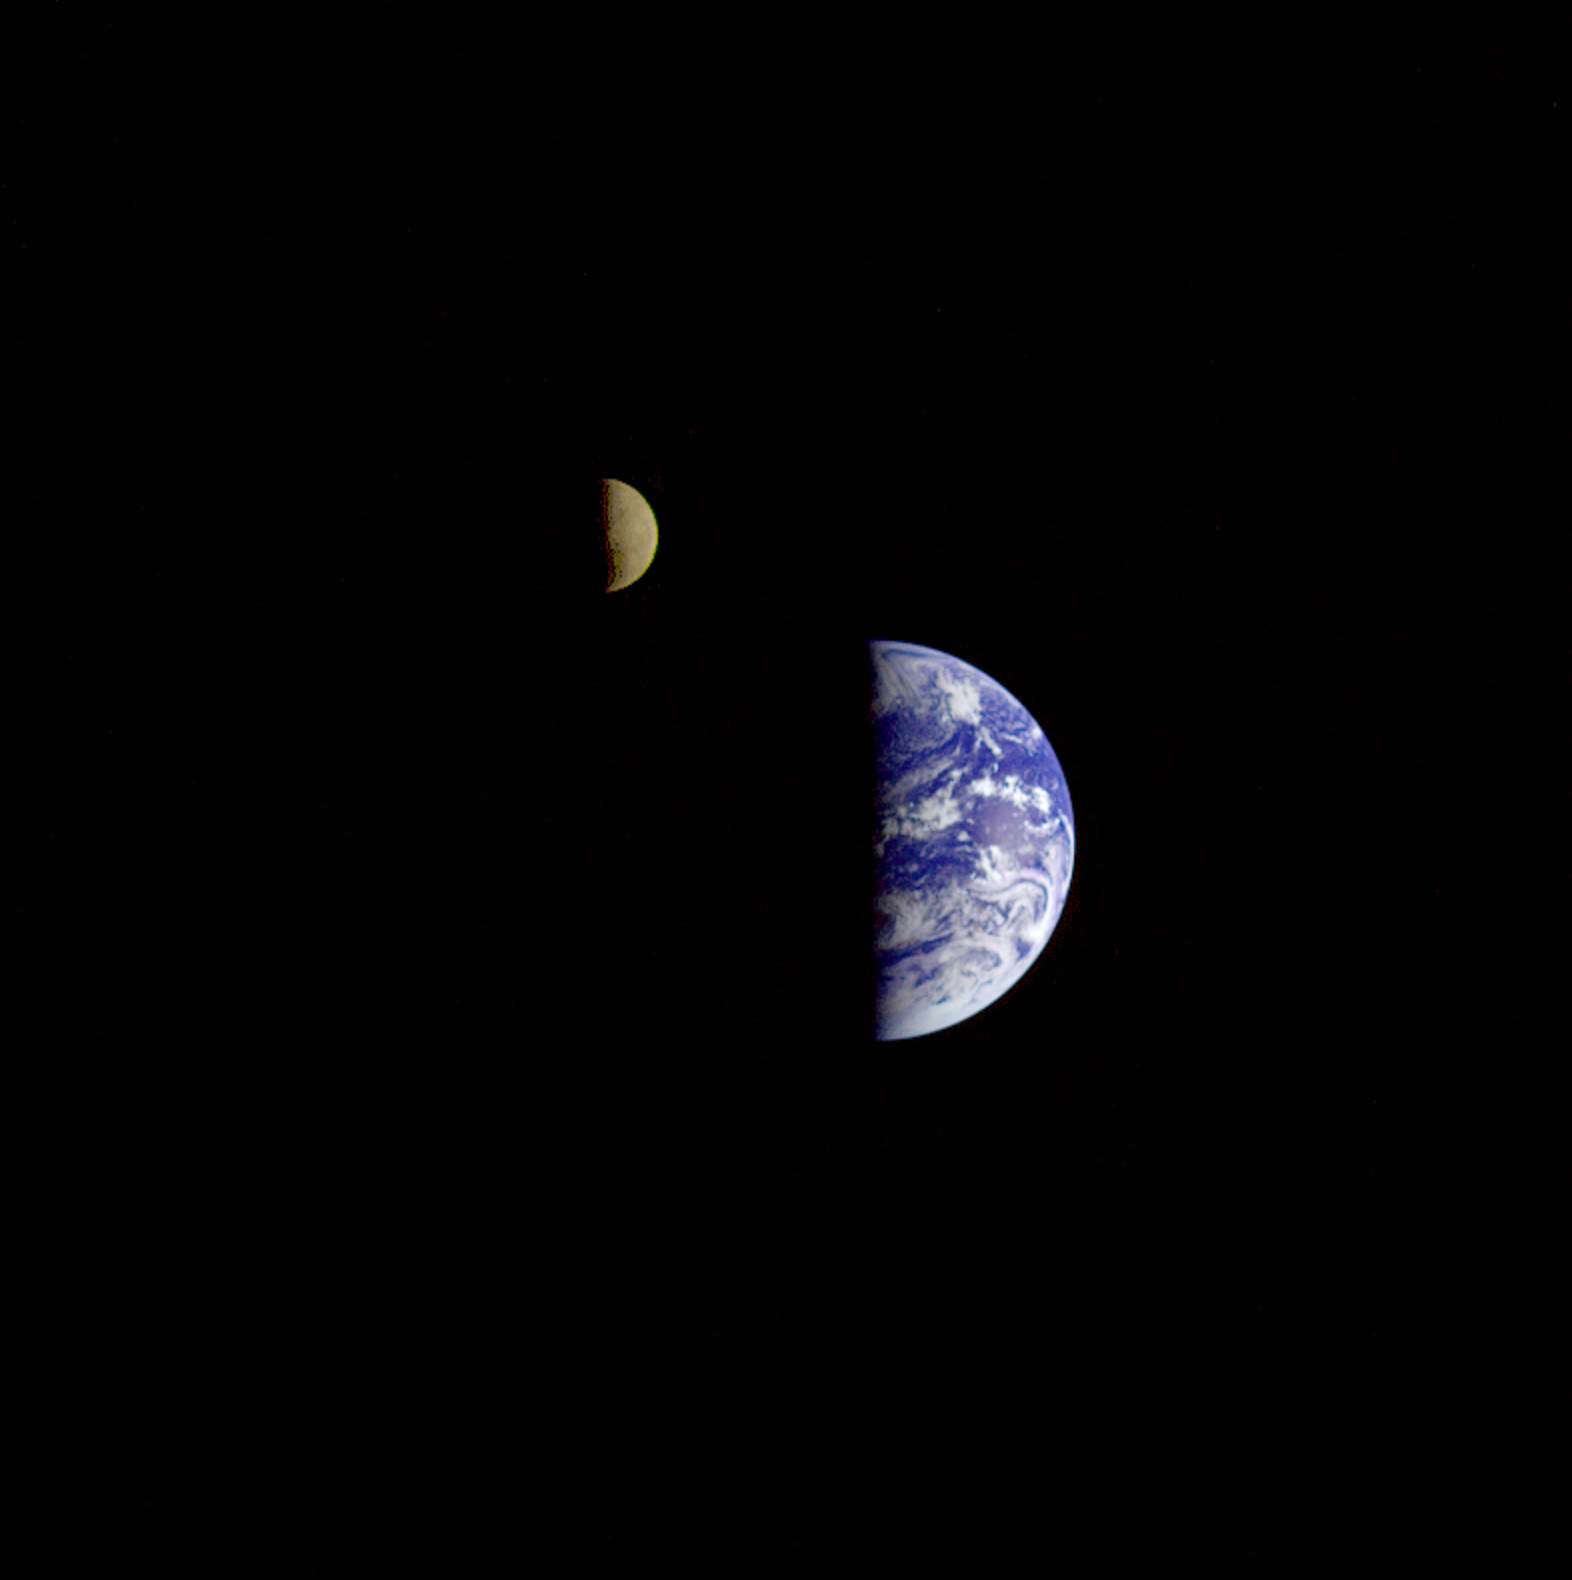 Eight days after its final encounter with the Earth, the Galileo spacecraft looked back and captured this remarkable view of the Earth and Moon.